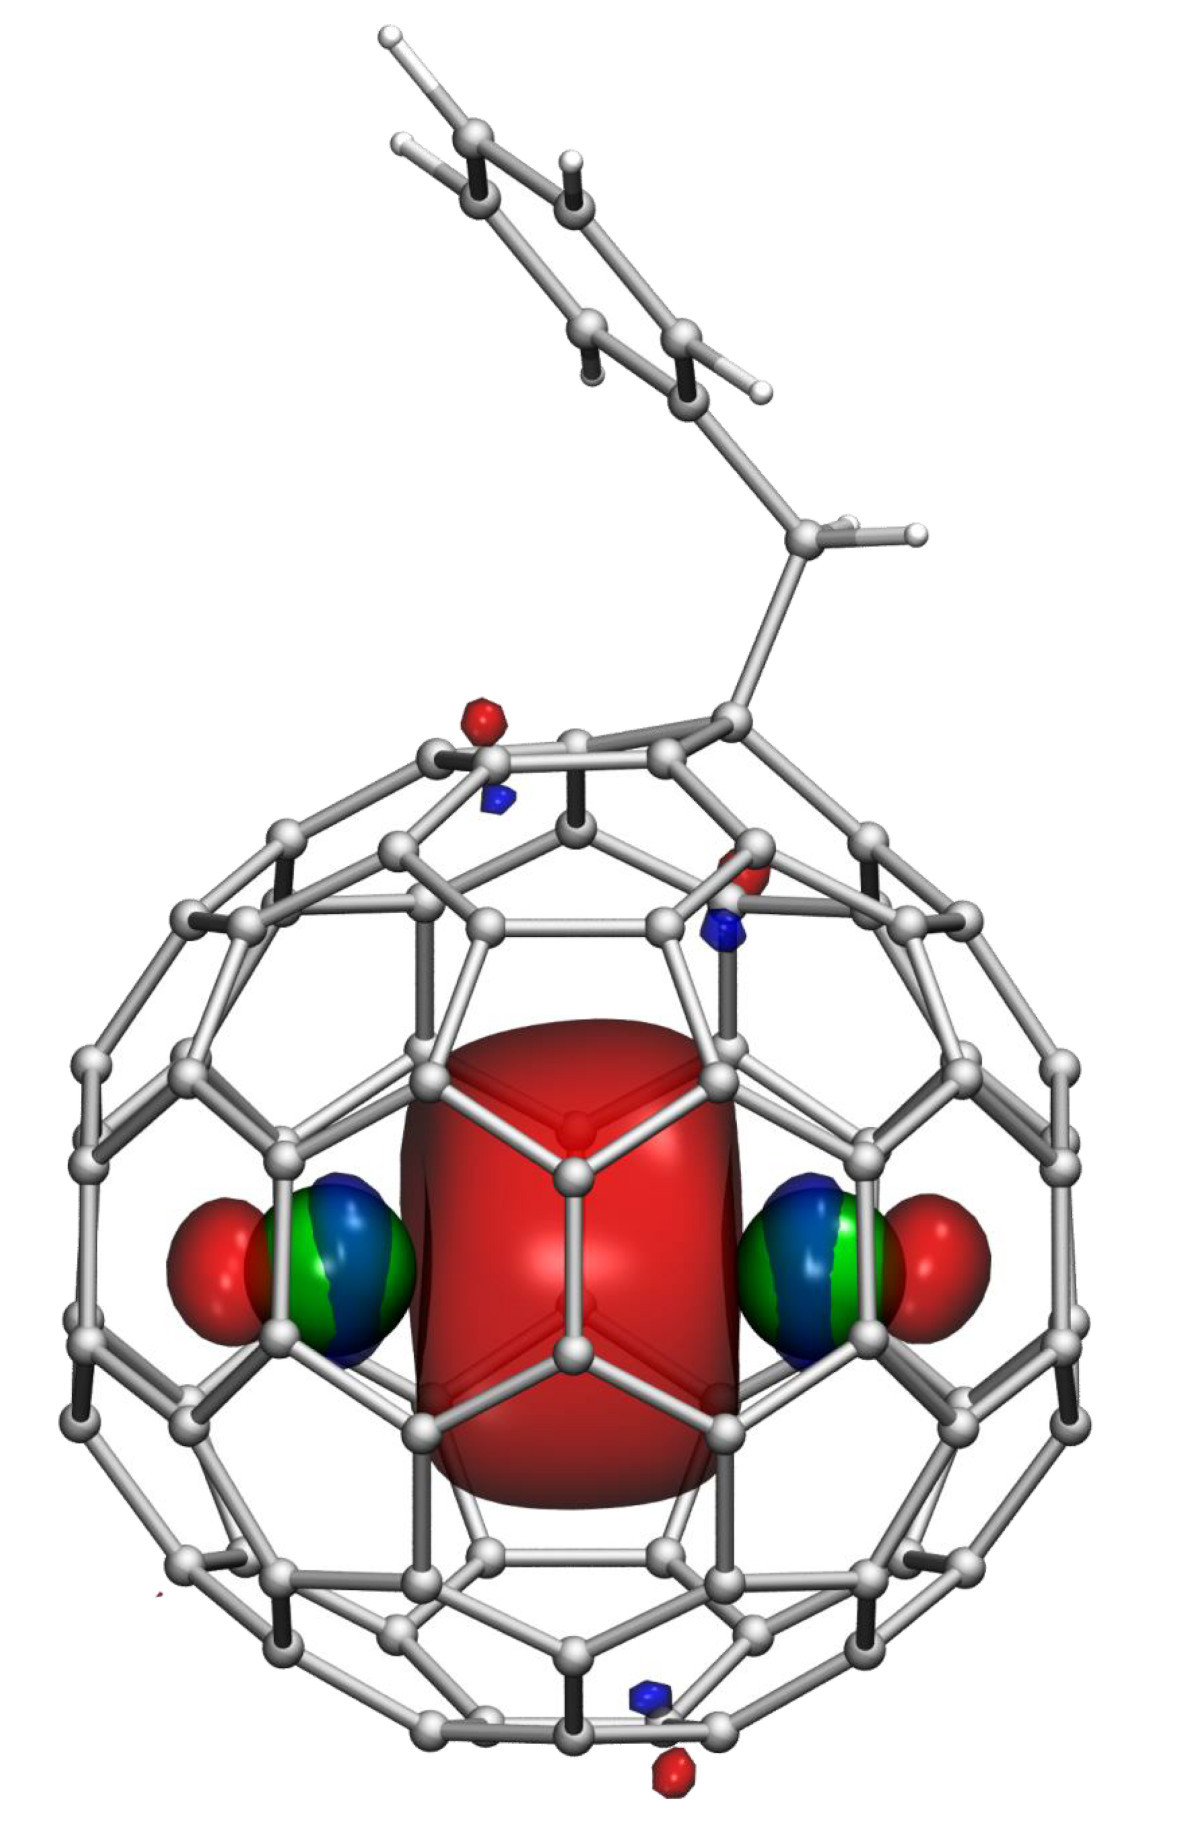 Fullerene with Lanthanide atoms